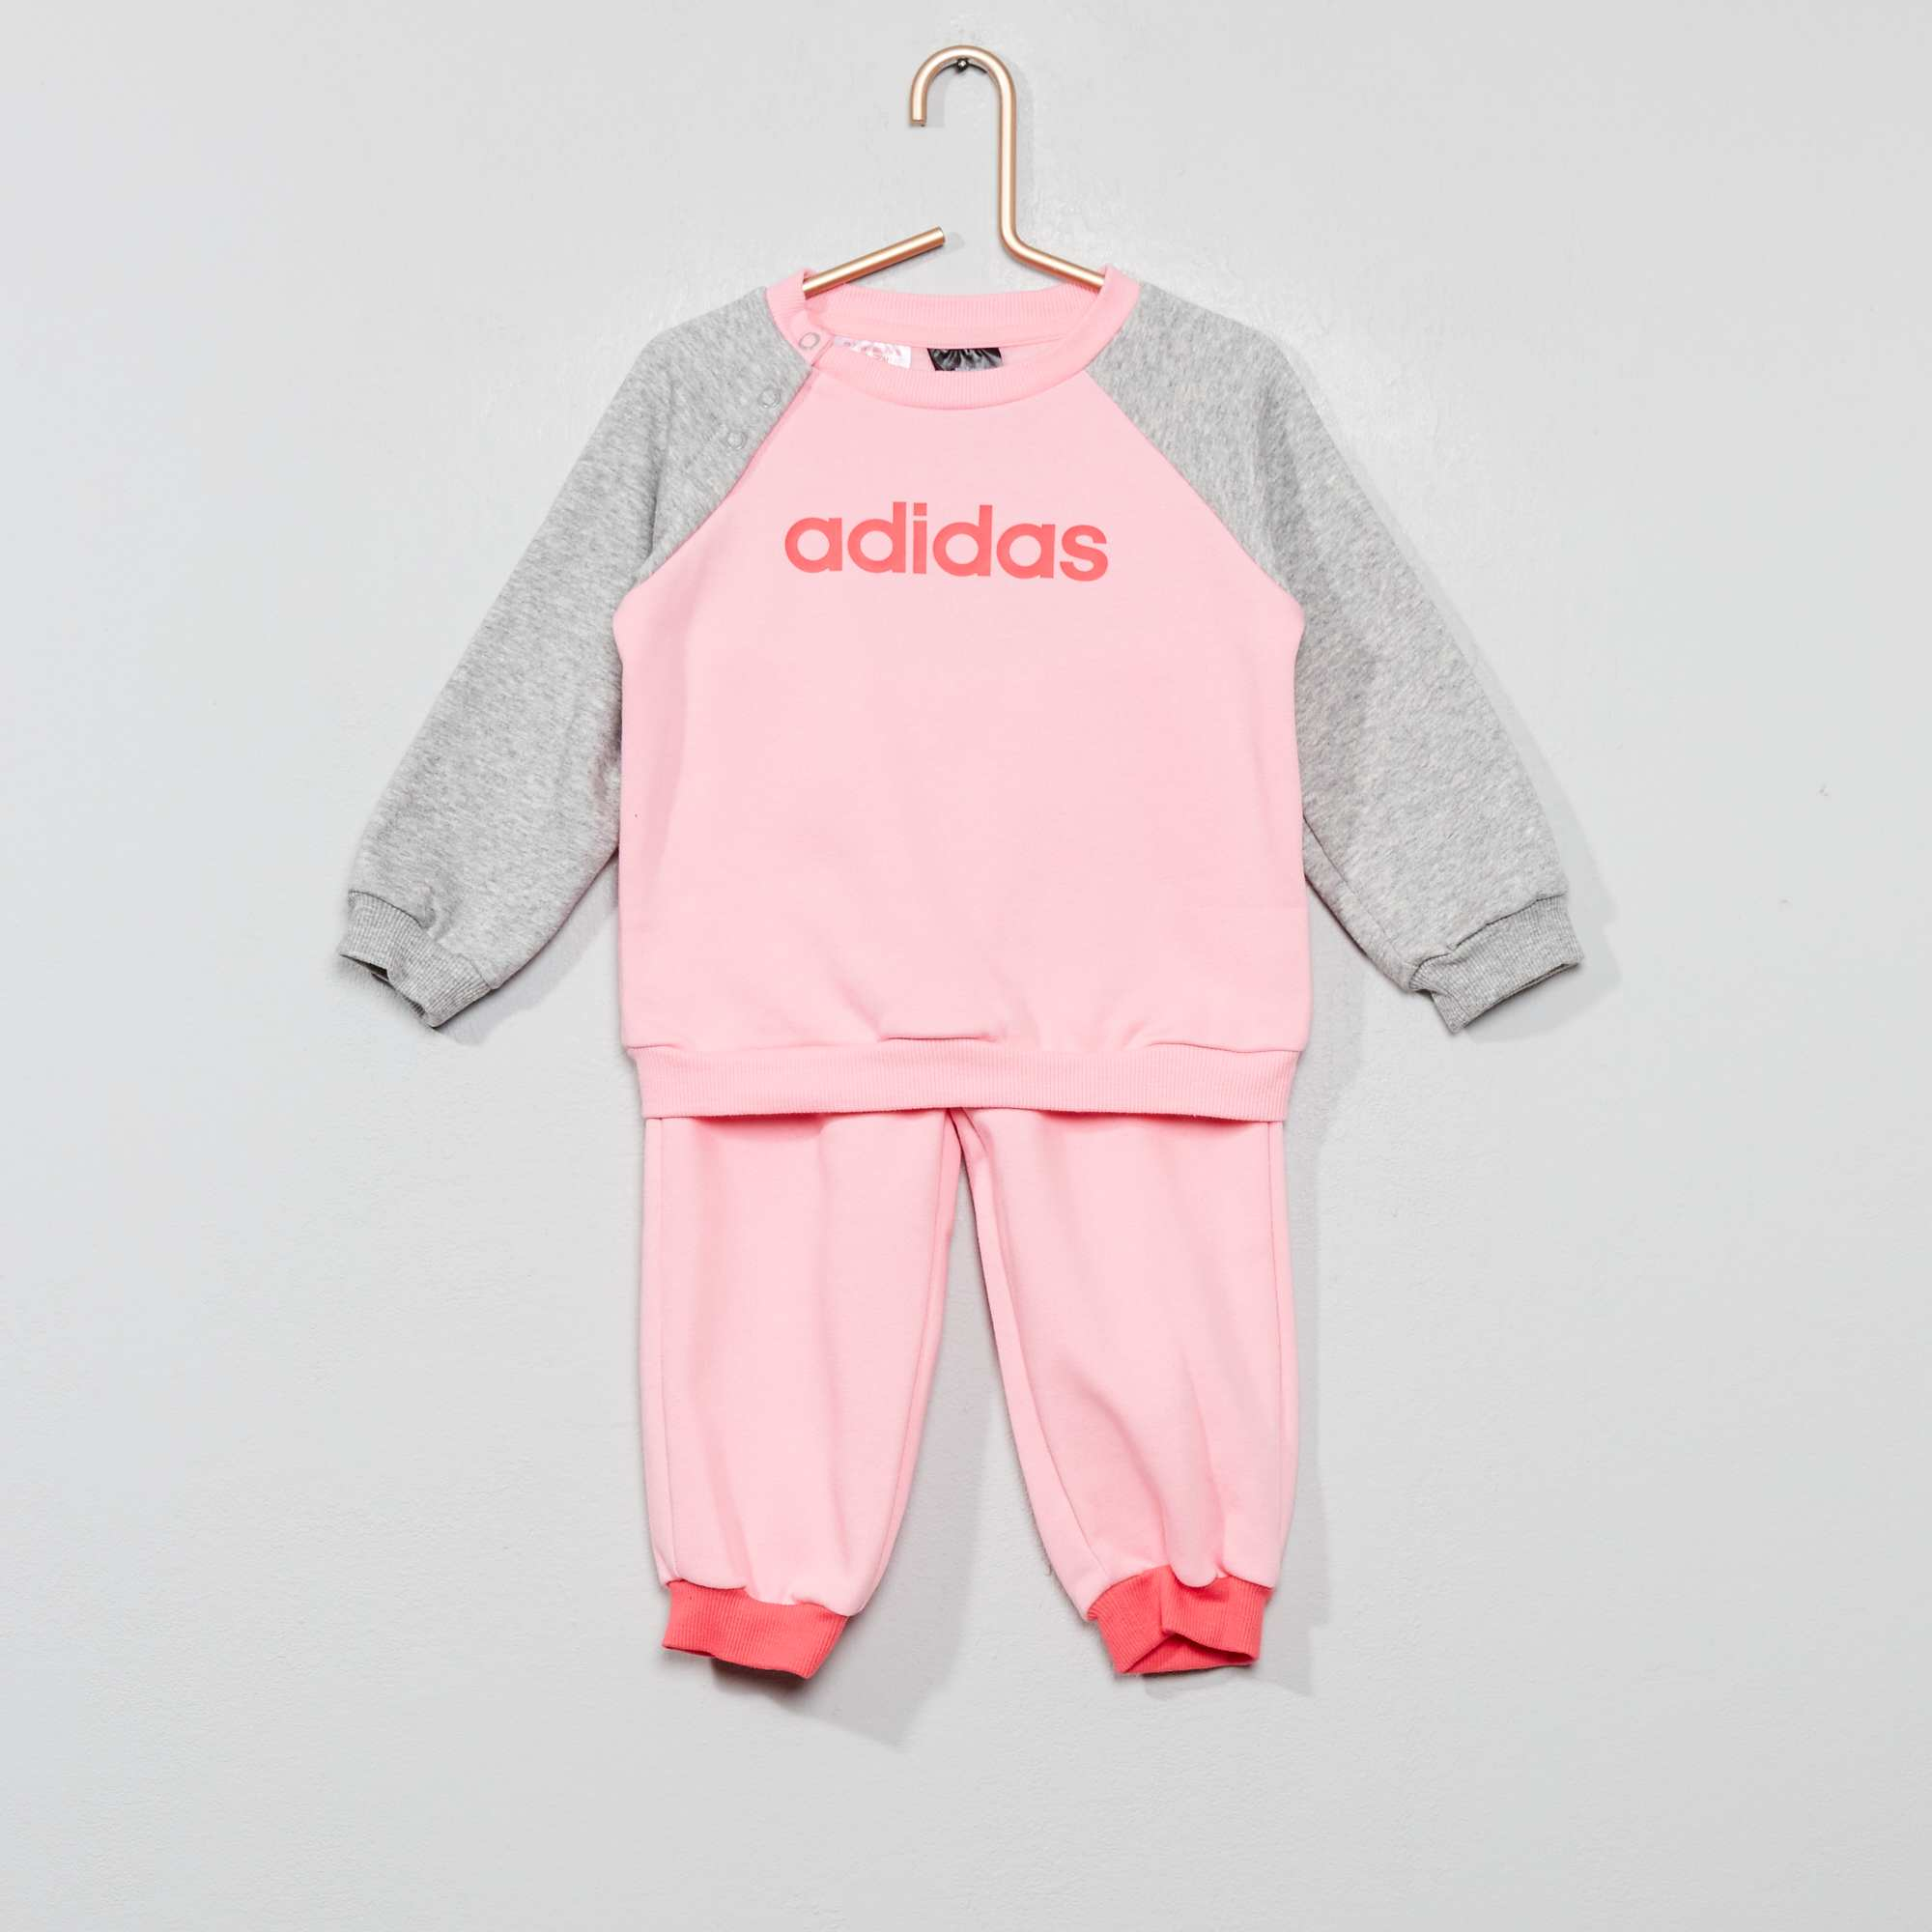 Fille Adidas Survetement Rose Adidas Adidas Survetement Survetement Fille Rose EYHID2W9